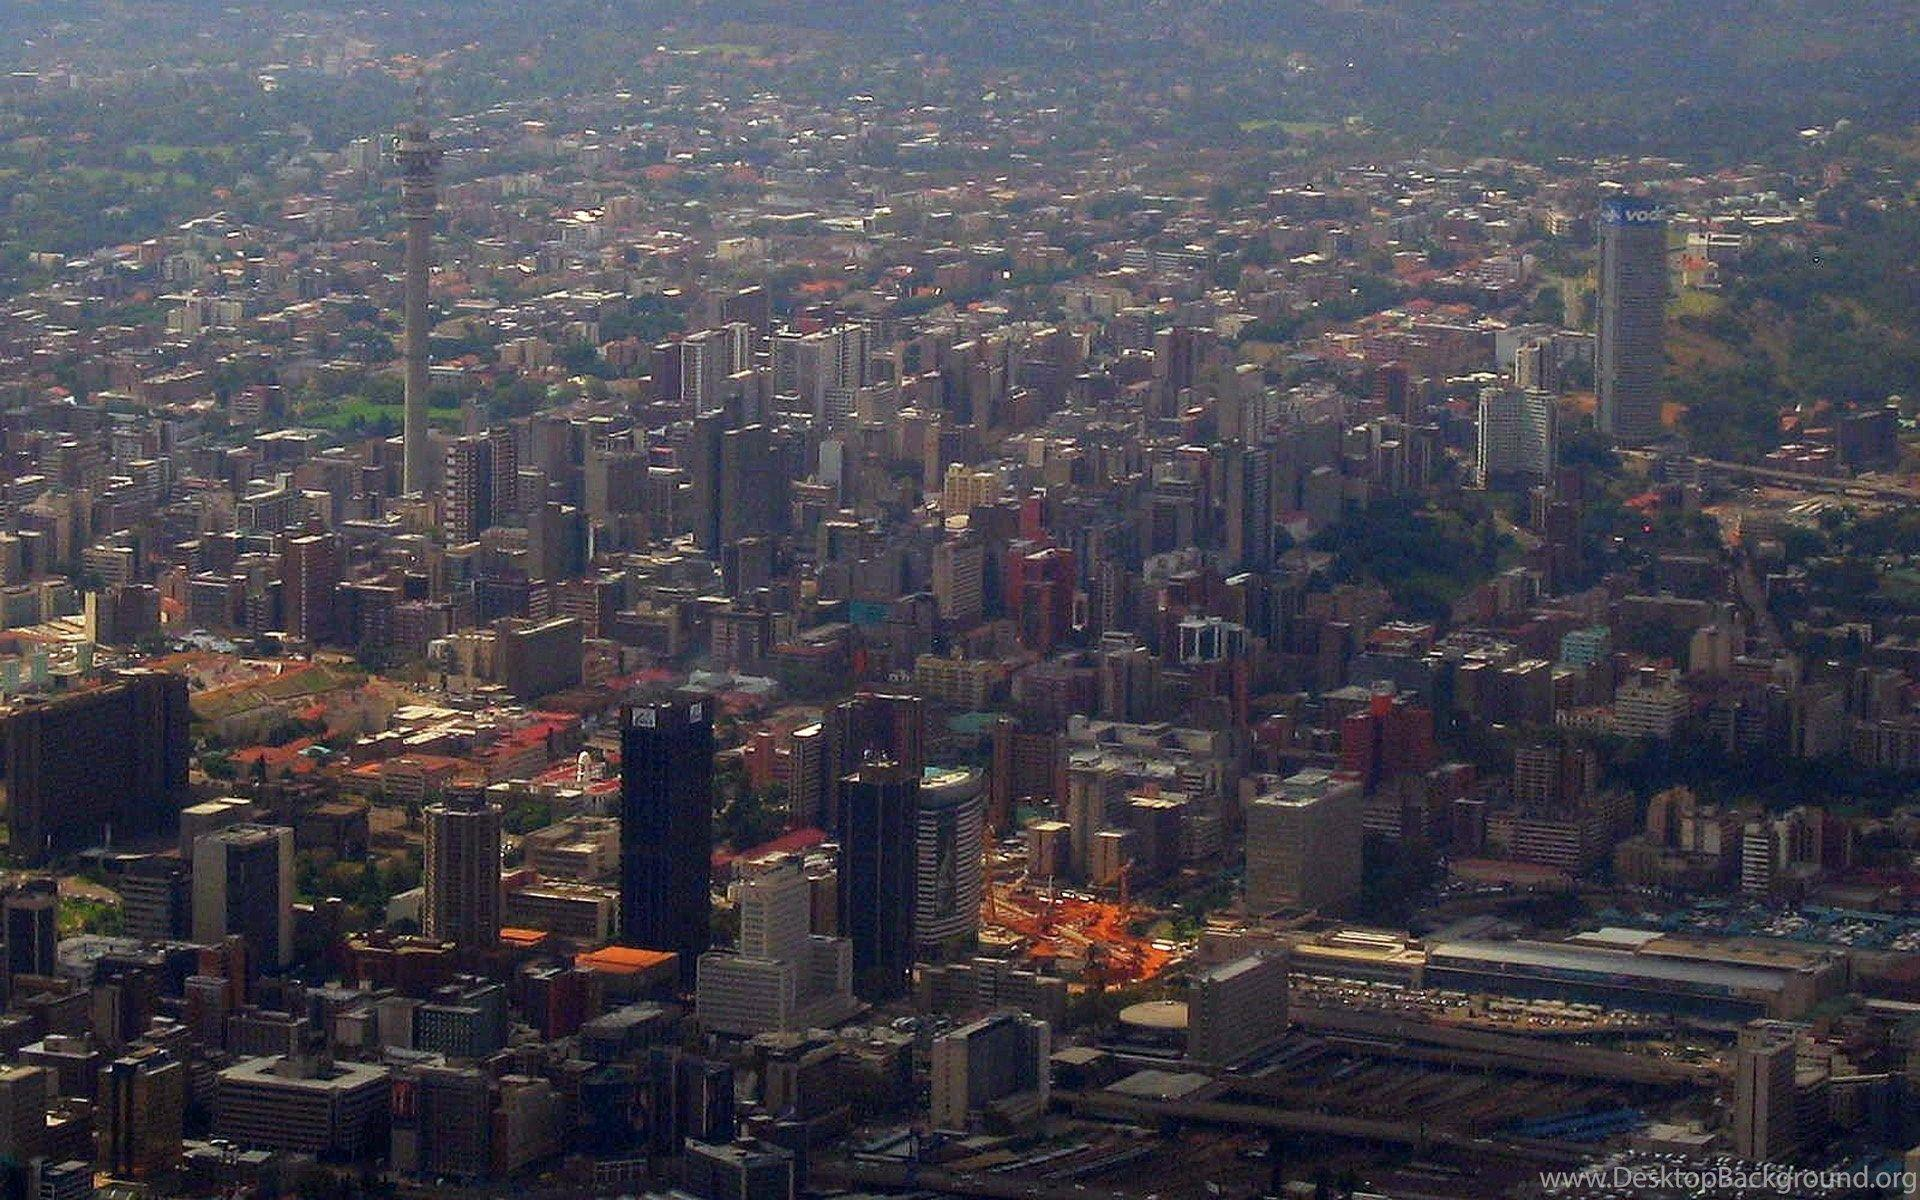 Johannesburg Bird Perspective Wallpapers Desktop Background